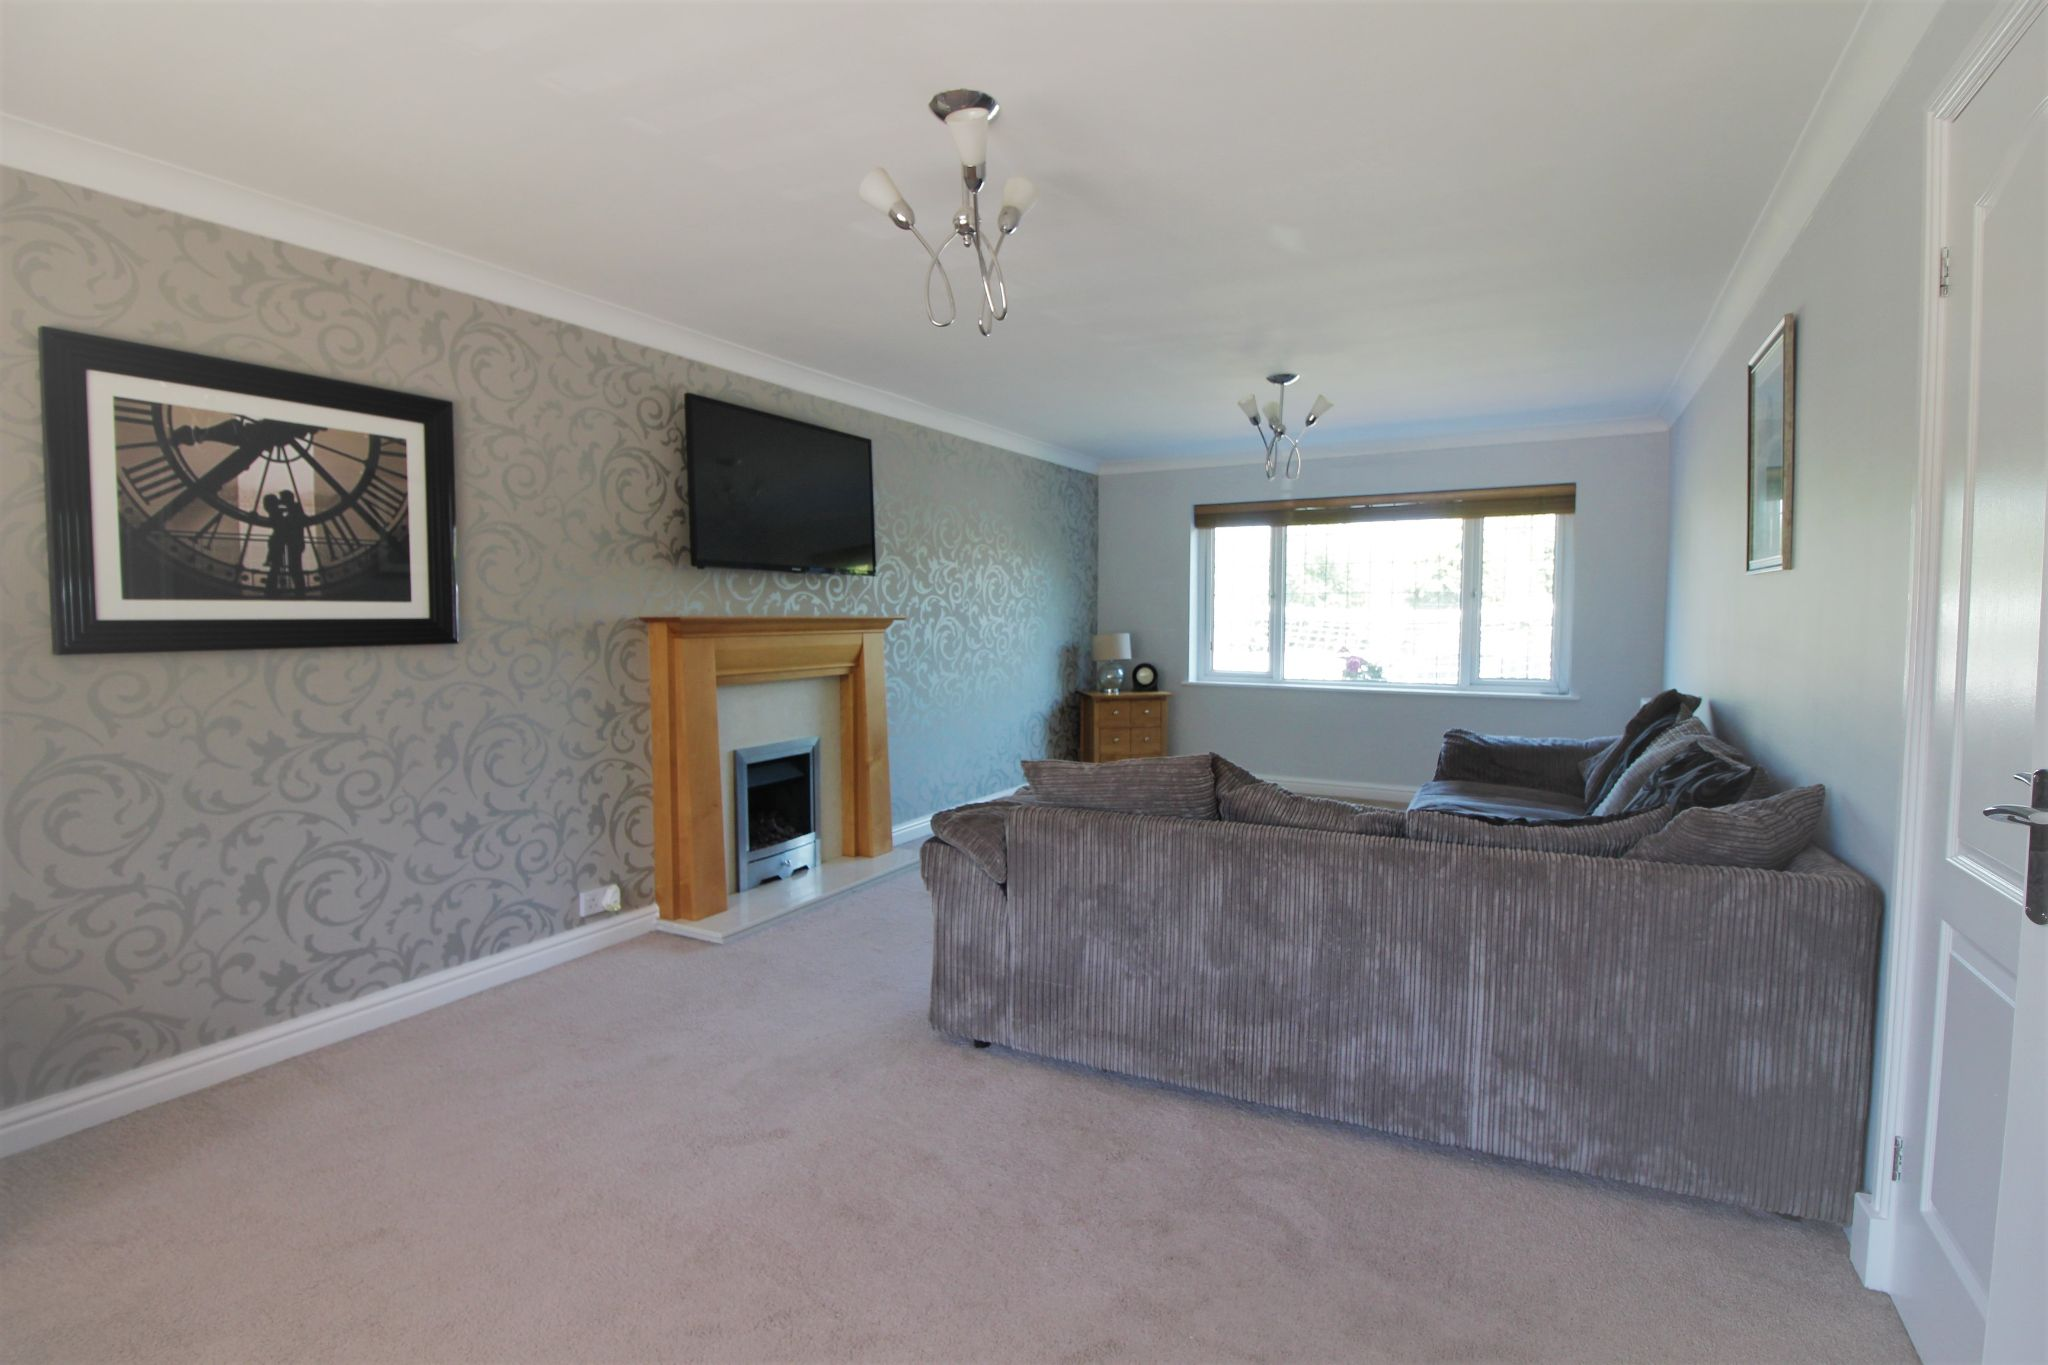 6 bedroom detached house For Sale in Solihull - Photograph 5.